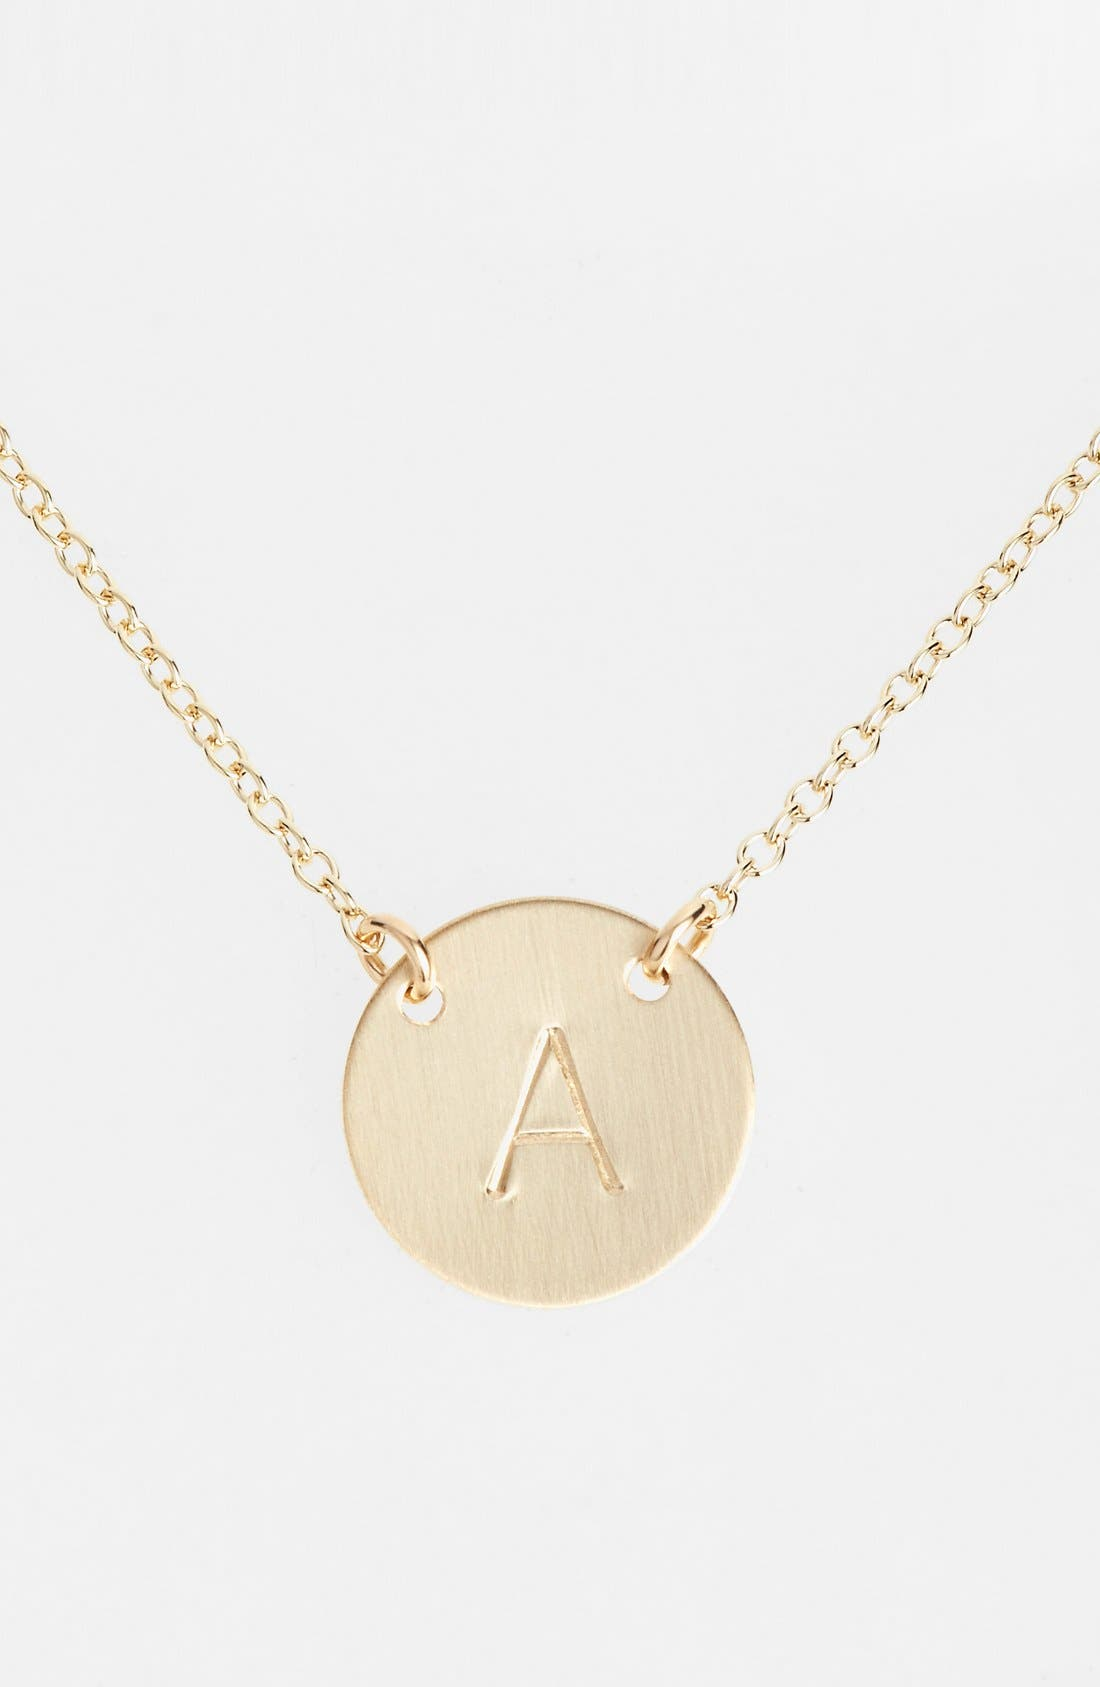 14k-Gold Fill Anchored Initial Disc Necklace,                             Main thumbnail 1, color,                             14K GOLD FILL A